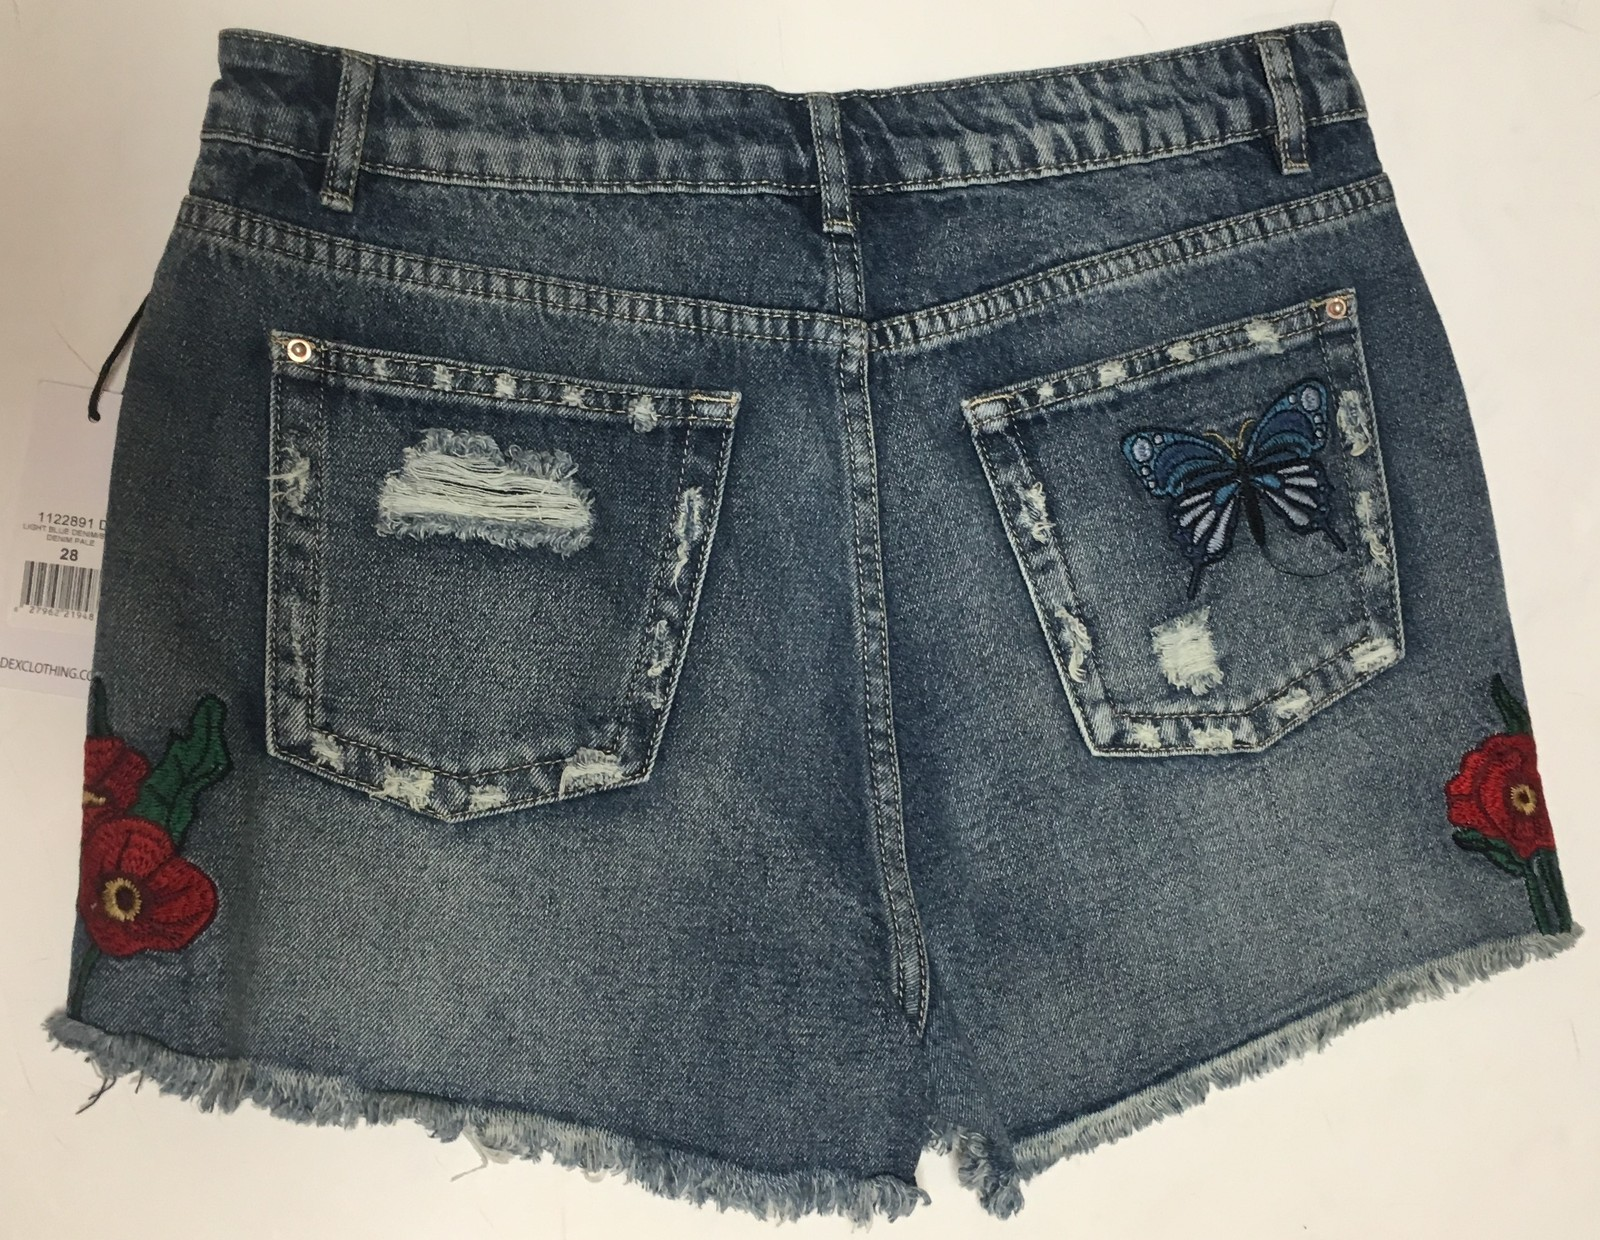 DEX Jean Shorts Embroidered Hummingbird Floral Distressed Sz 28 image 5